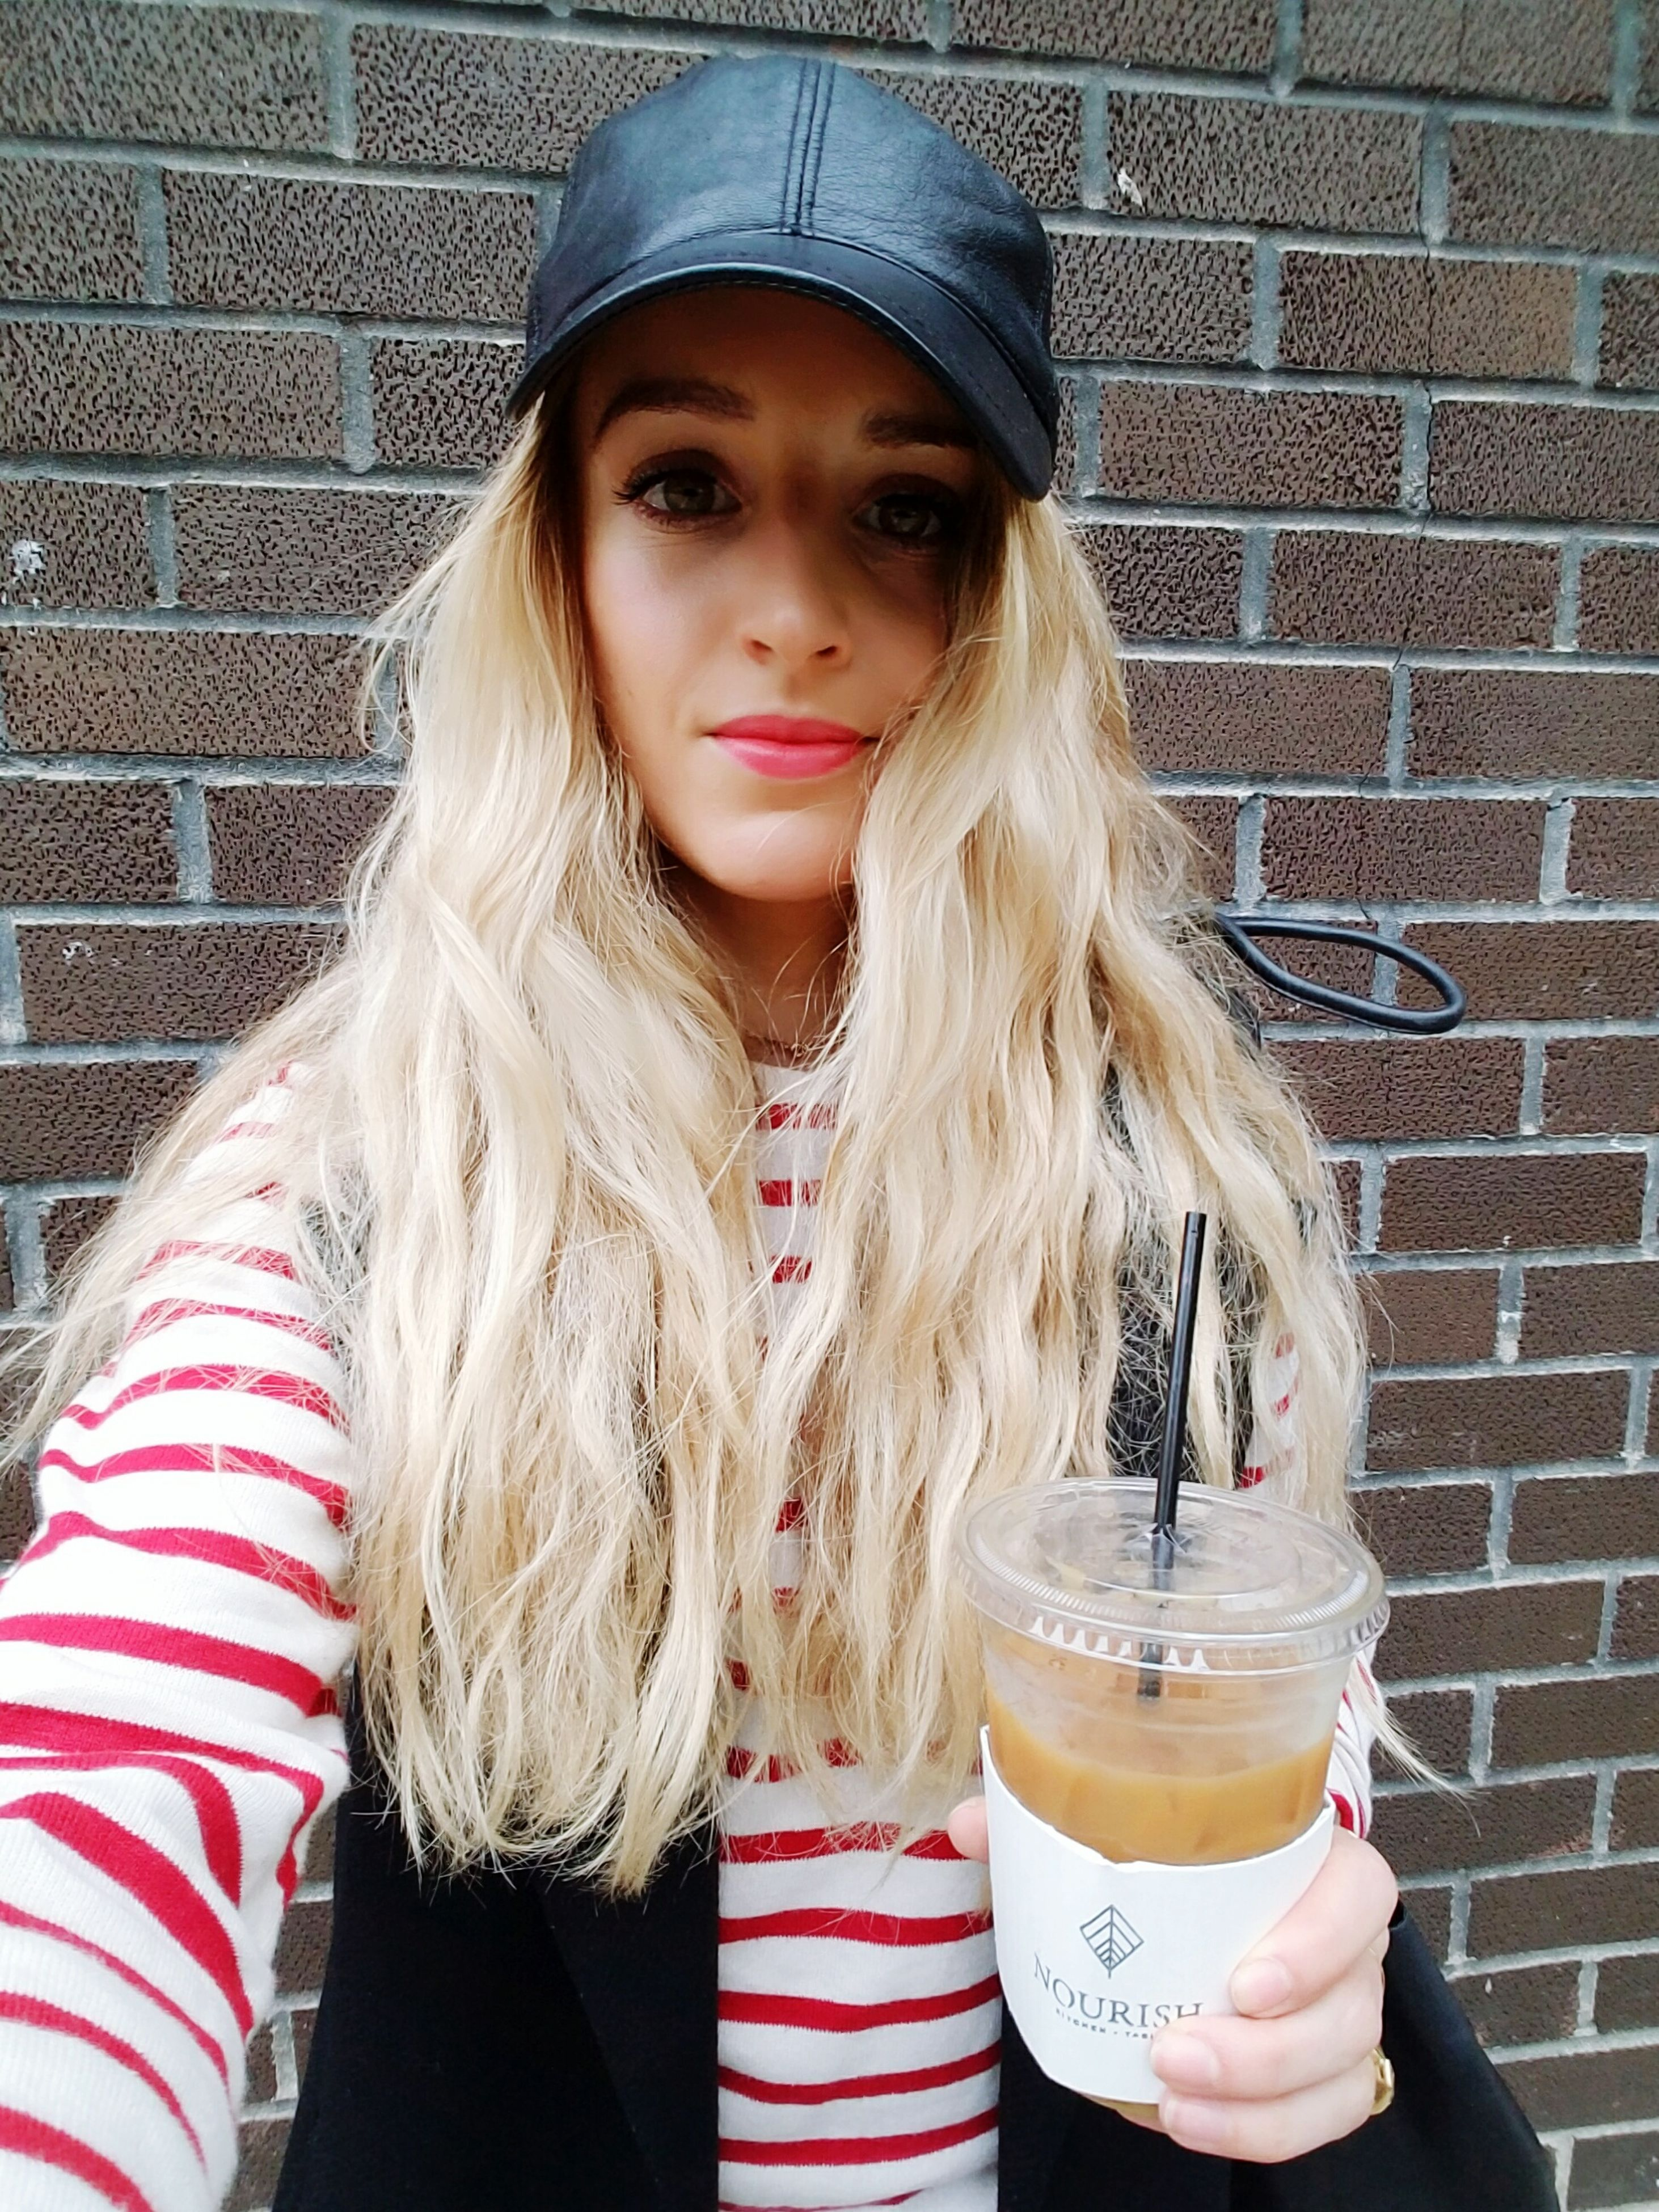 portrait, looking at camera, real people, front view, drinking, brick wall, drink, lifestyles, one person, long hair, young women, young adult, drinking straw, beautiful woman, drinking glass, leisure activity, blond hair, outdoors, standing, day, adult, people